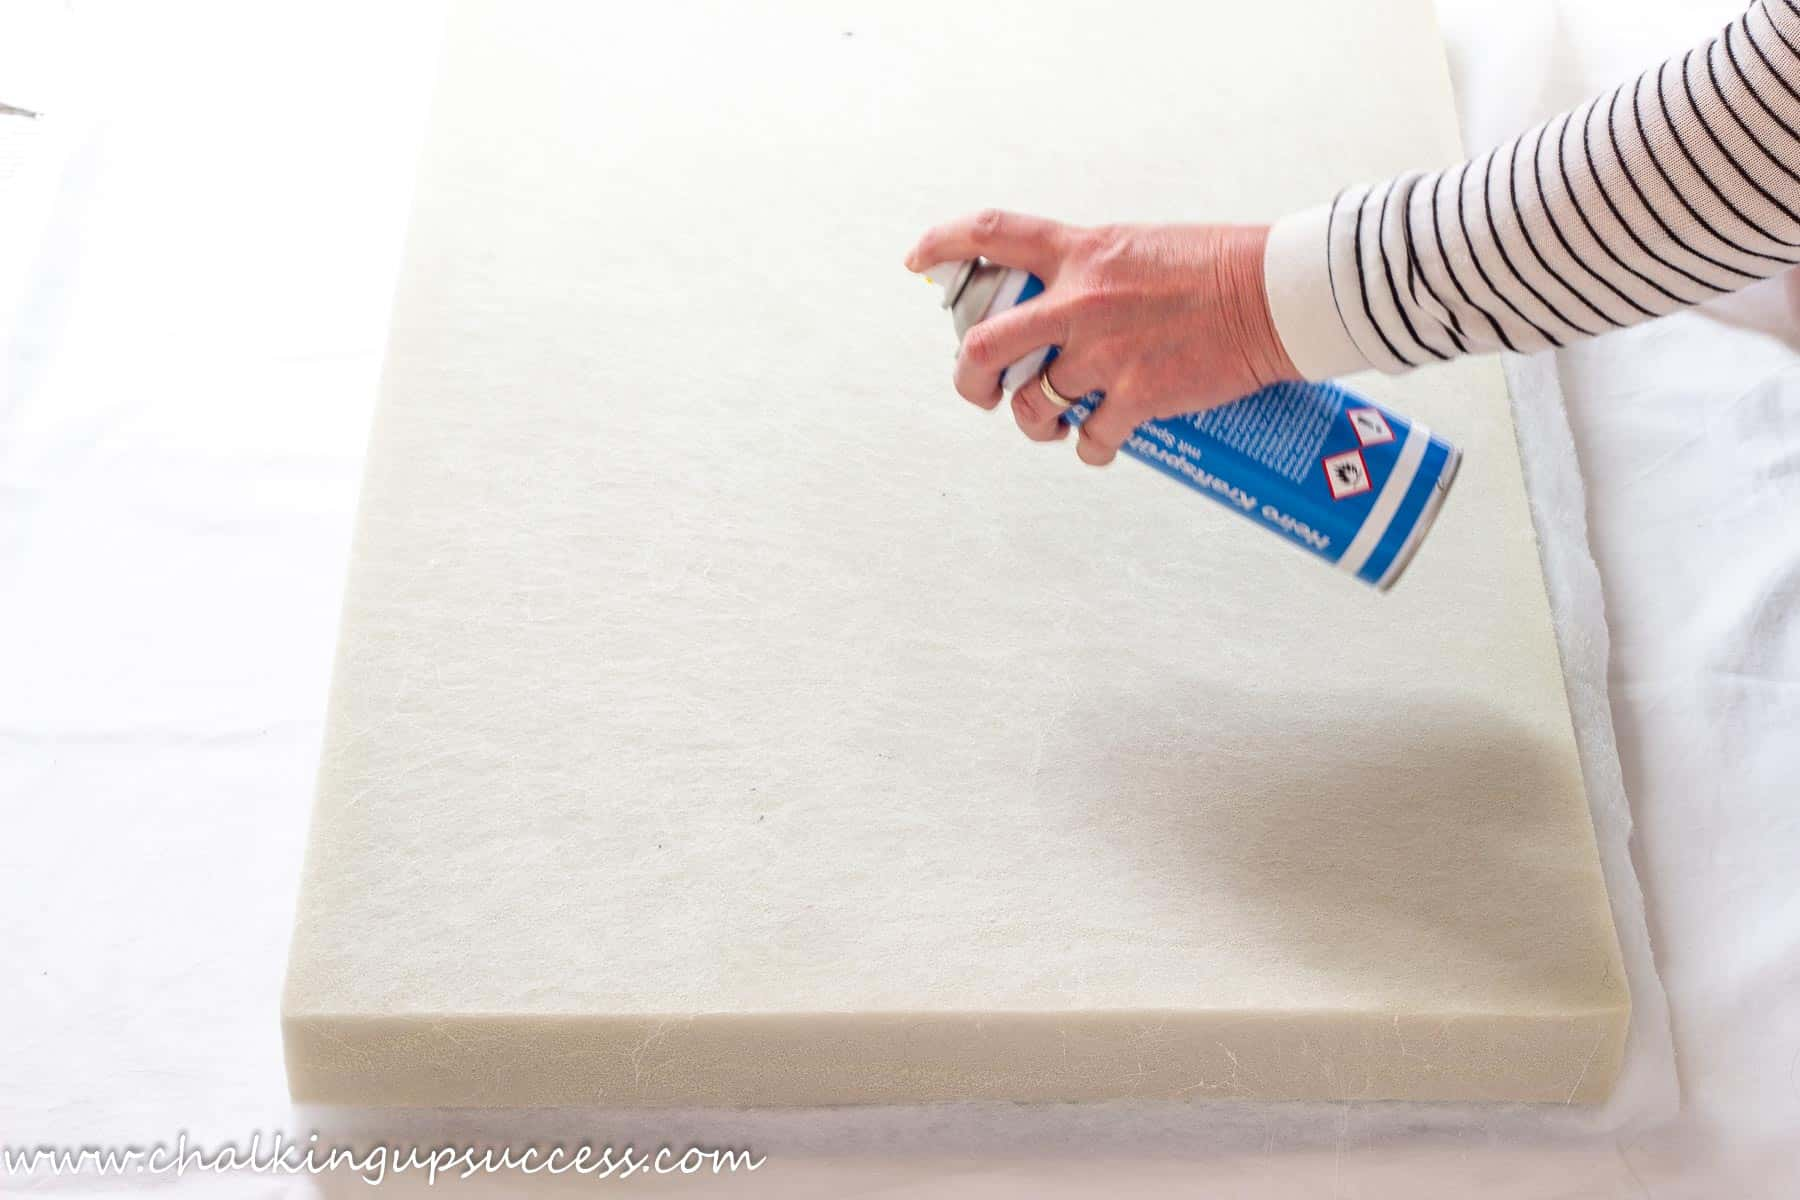 A person spraying a high density foam cushion pad with spray adhesive